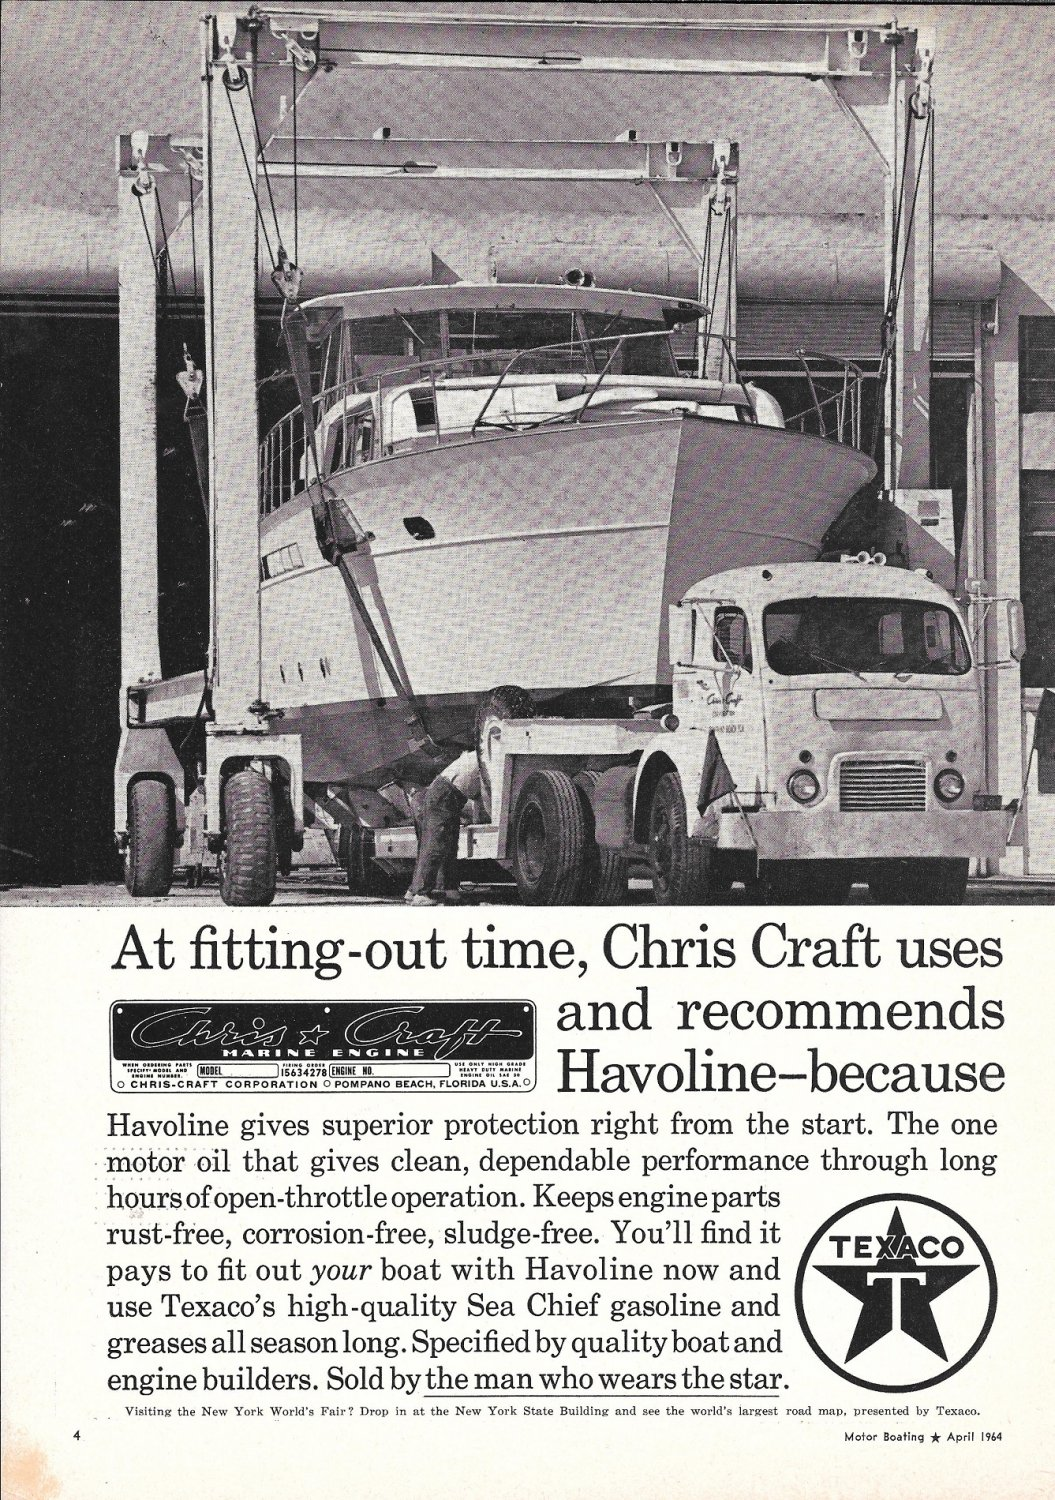 1964 Texaco Marine Ad- Nice Photo of Chris- Craft Yacht Fitting- out Time